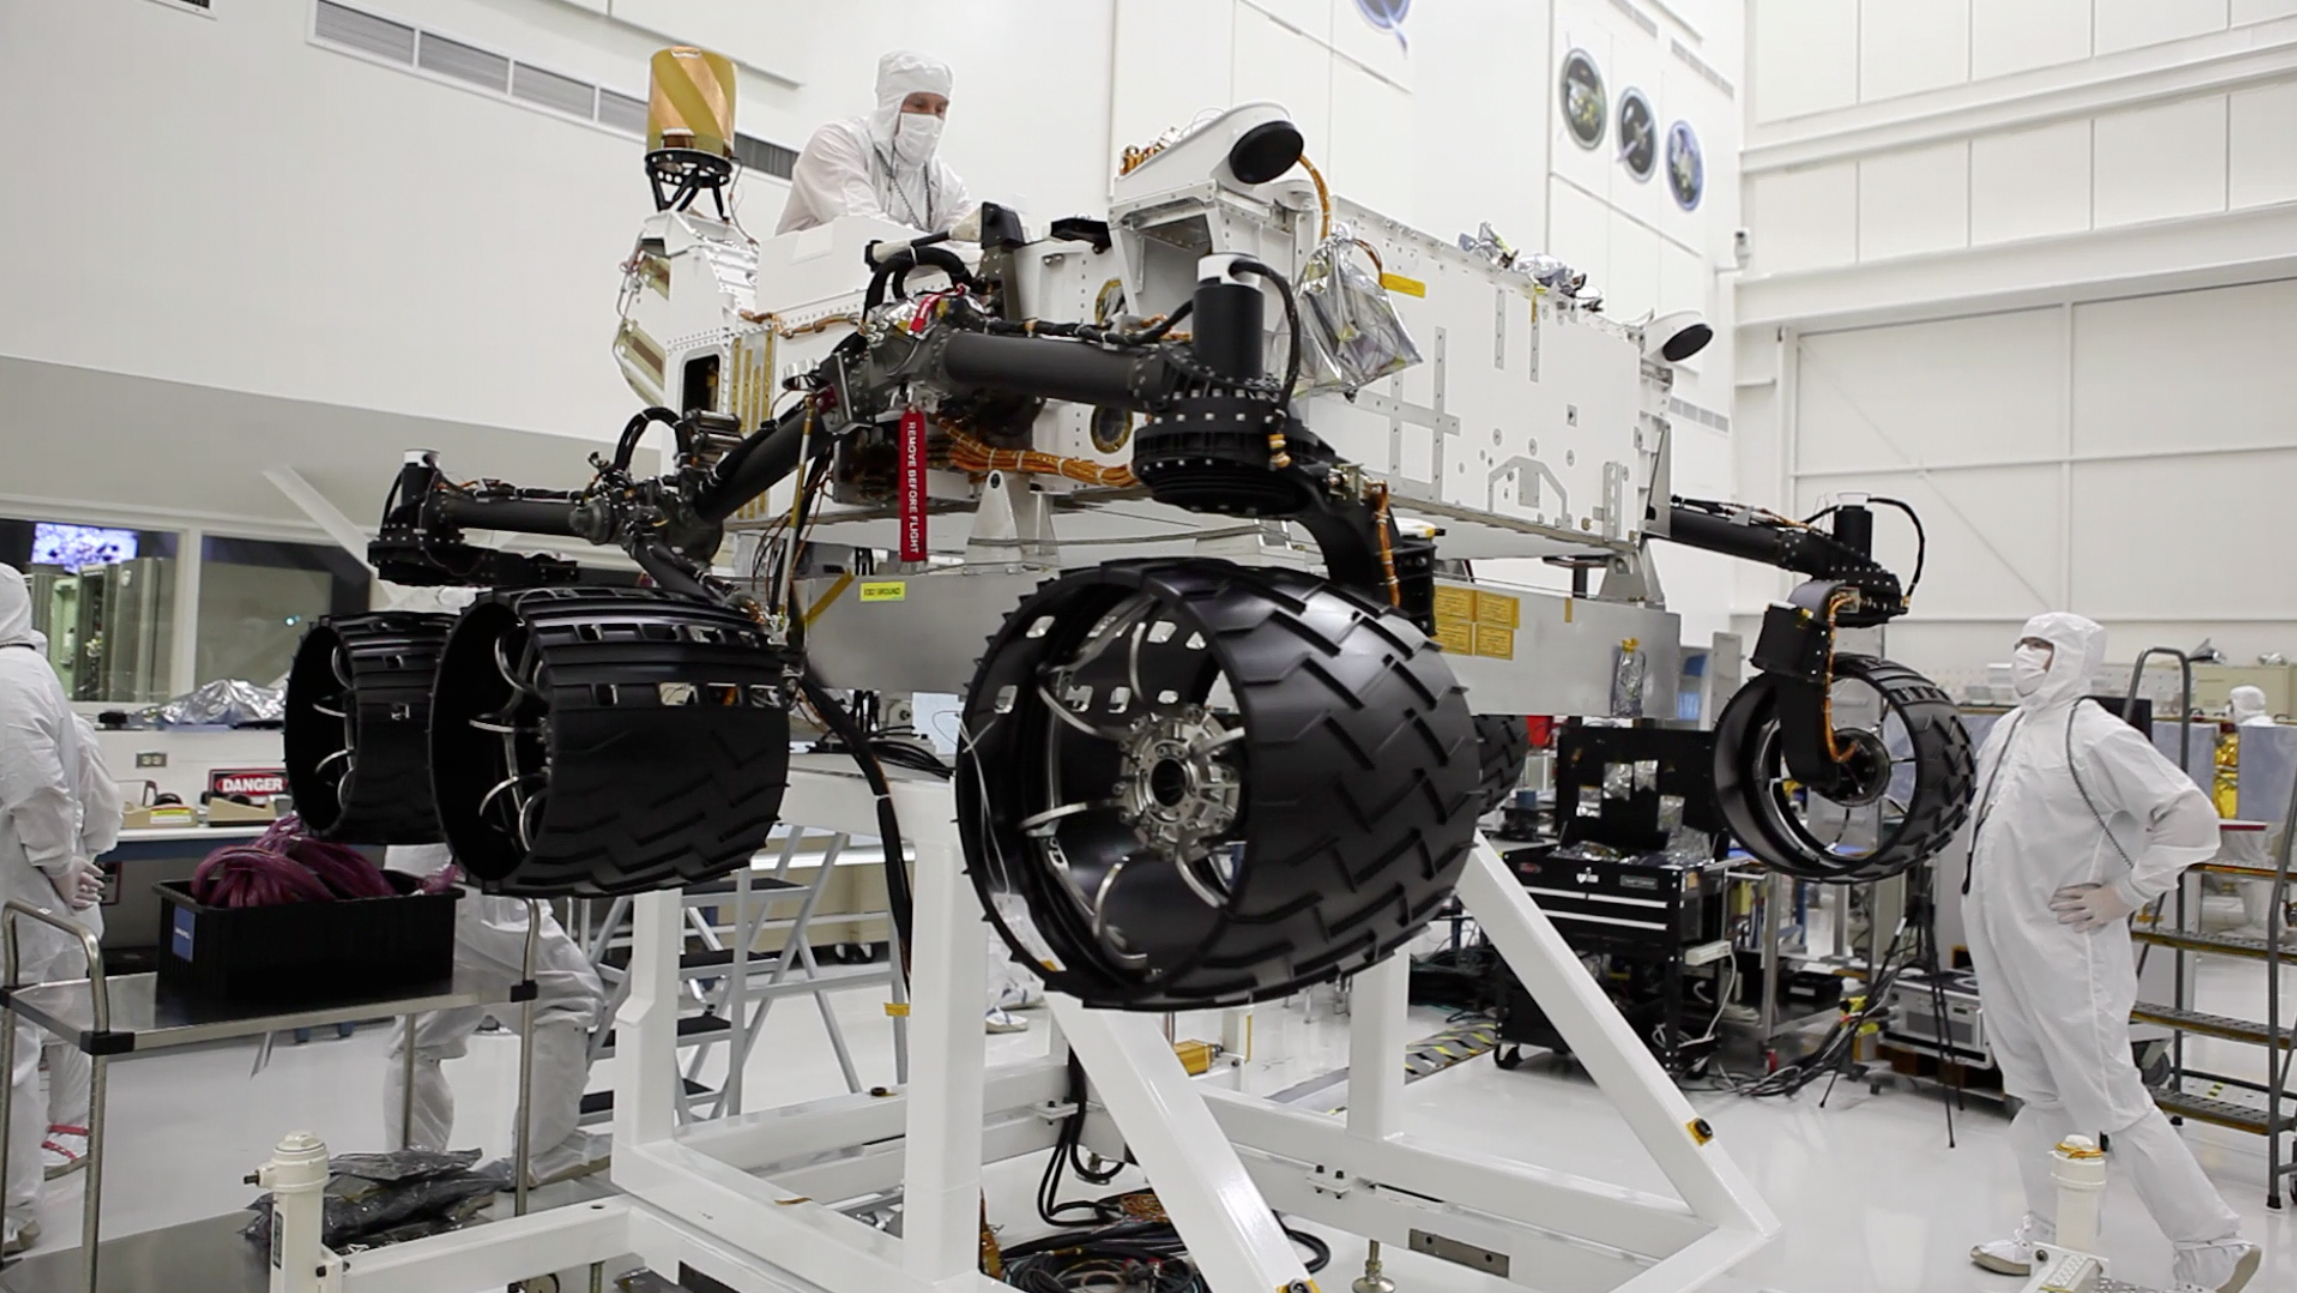 This image was taken in the clean room where the Curiosity rover is being assembled. It shows the rover, which is about the size of an SUV, hoisted on a white lift, with its black wheels suspended in the air. One engineer is on top of the hoist and is leaning over the rover body, while another is looking up on the ground floor to the right of the rover. Both engineers are wearing white